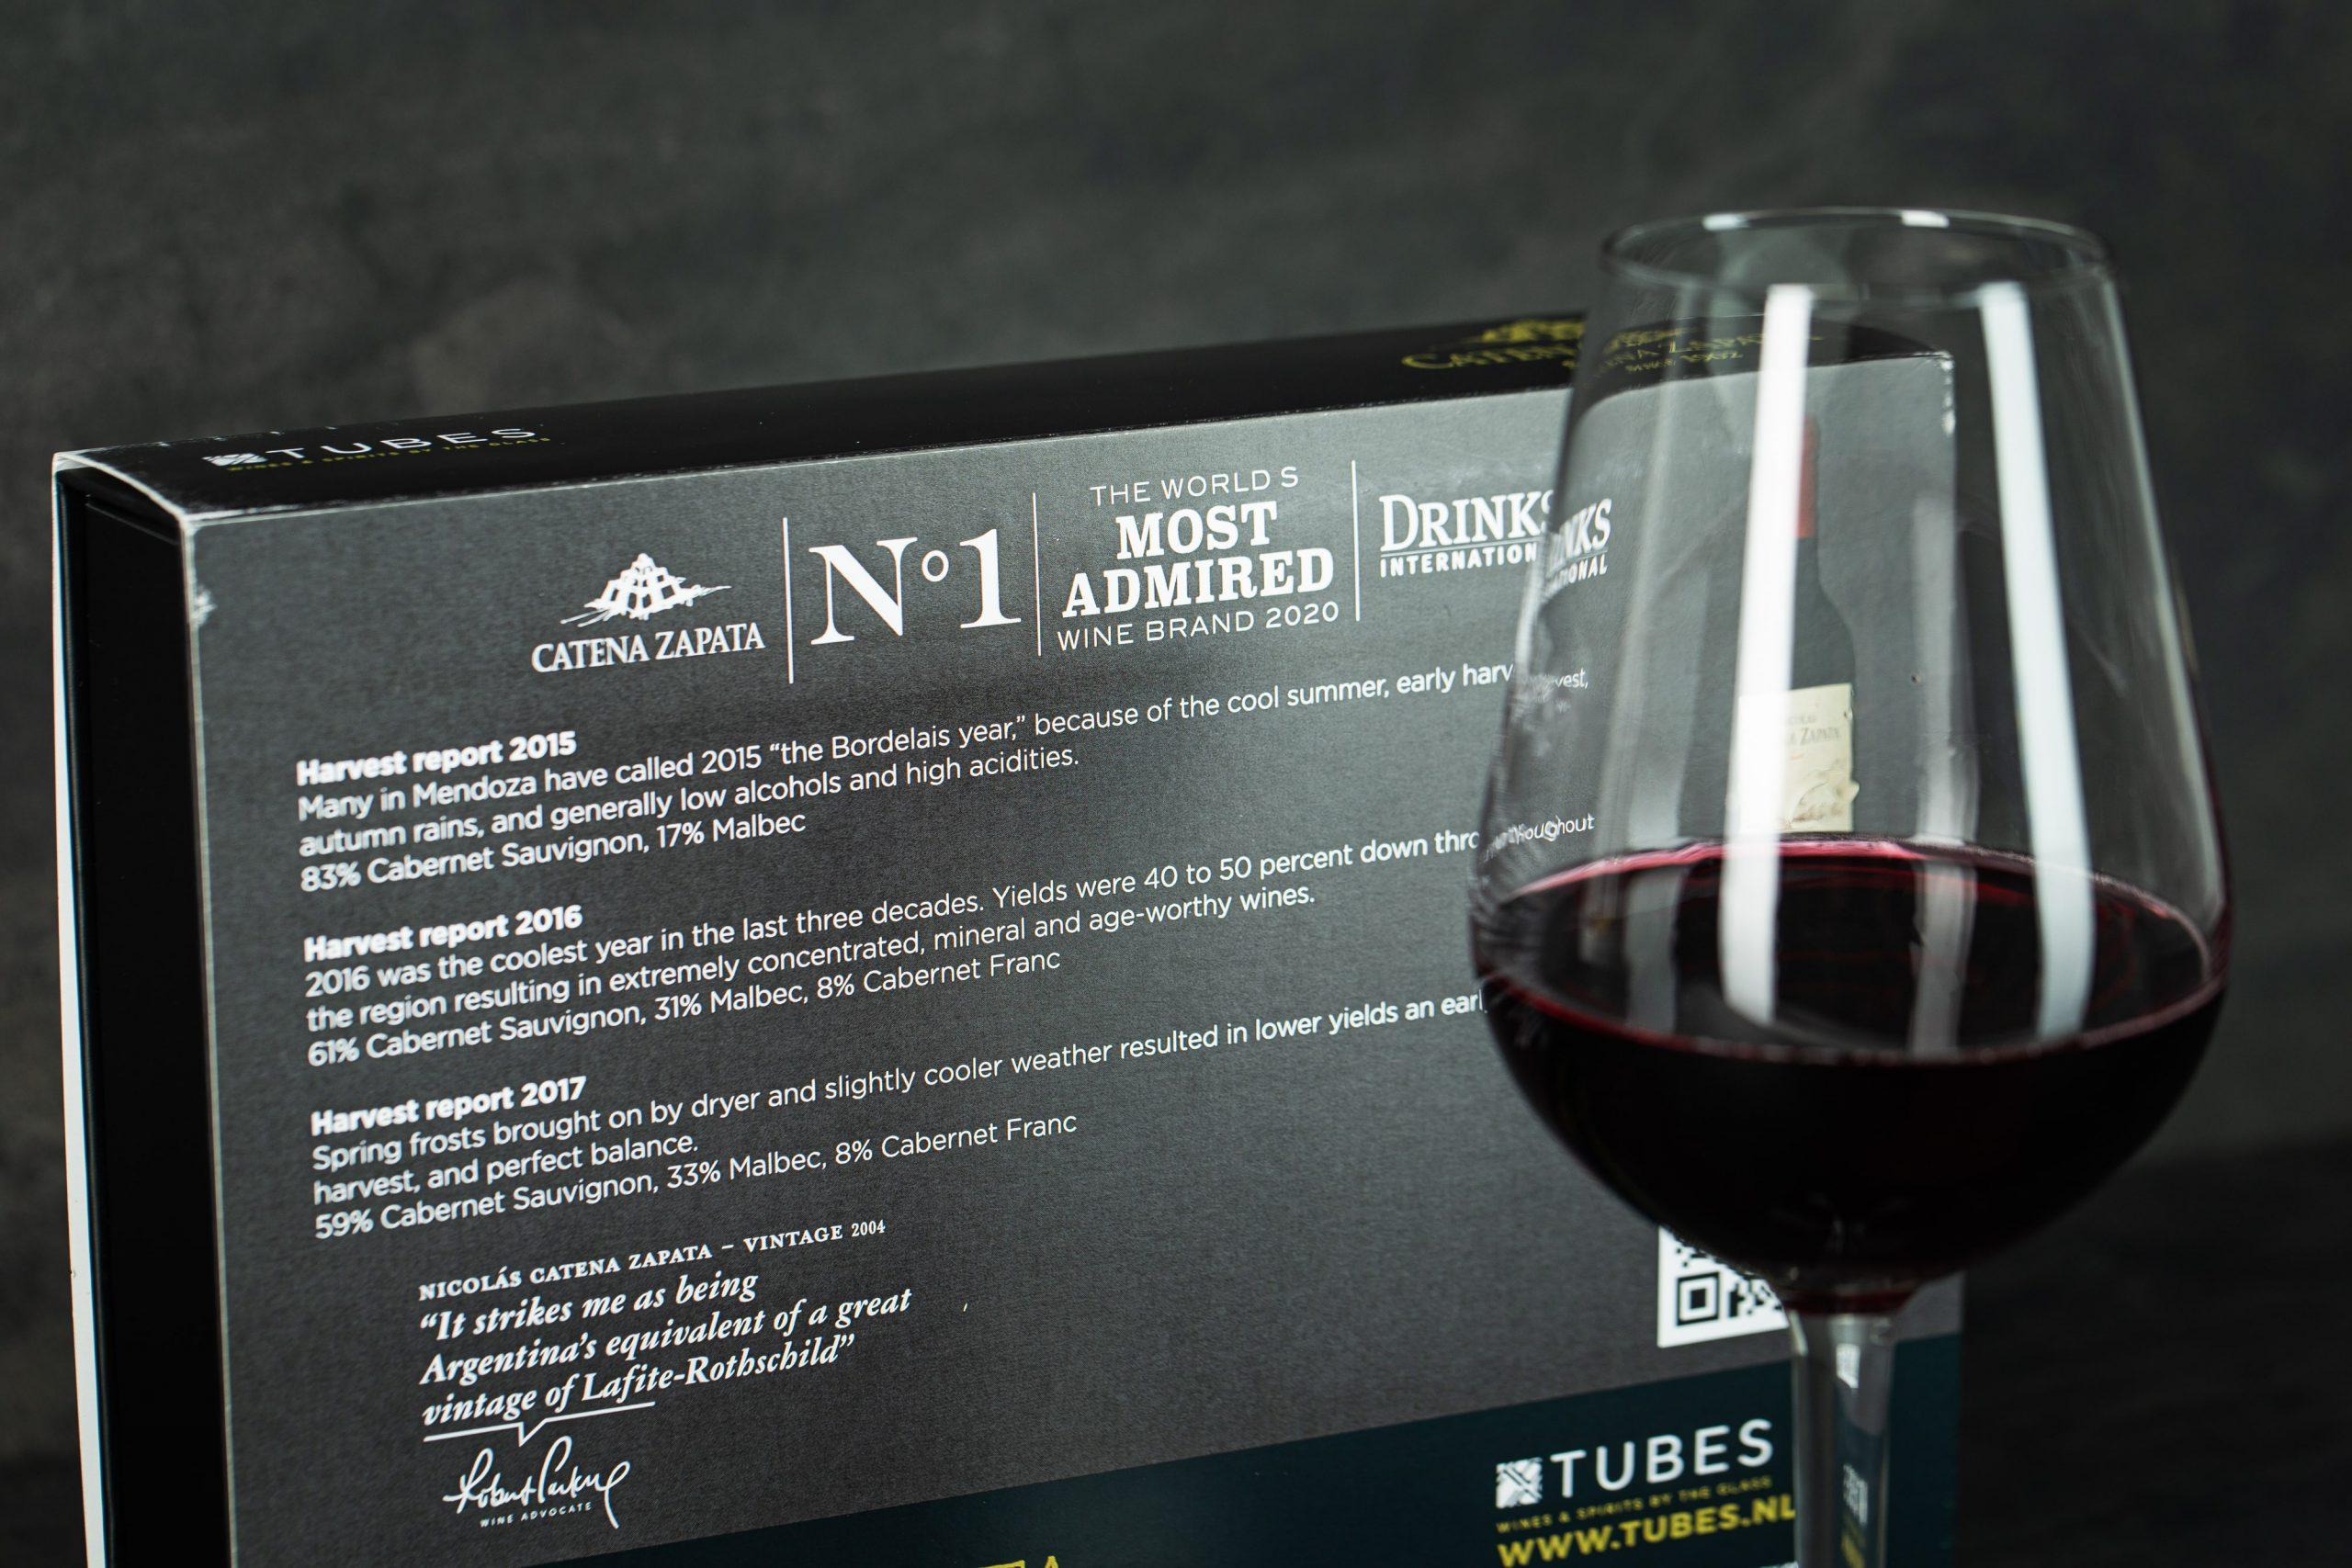 Dutch company TUBES bottles wine for Most Admired Wine Brand 2020